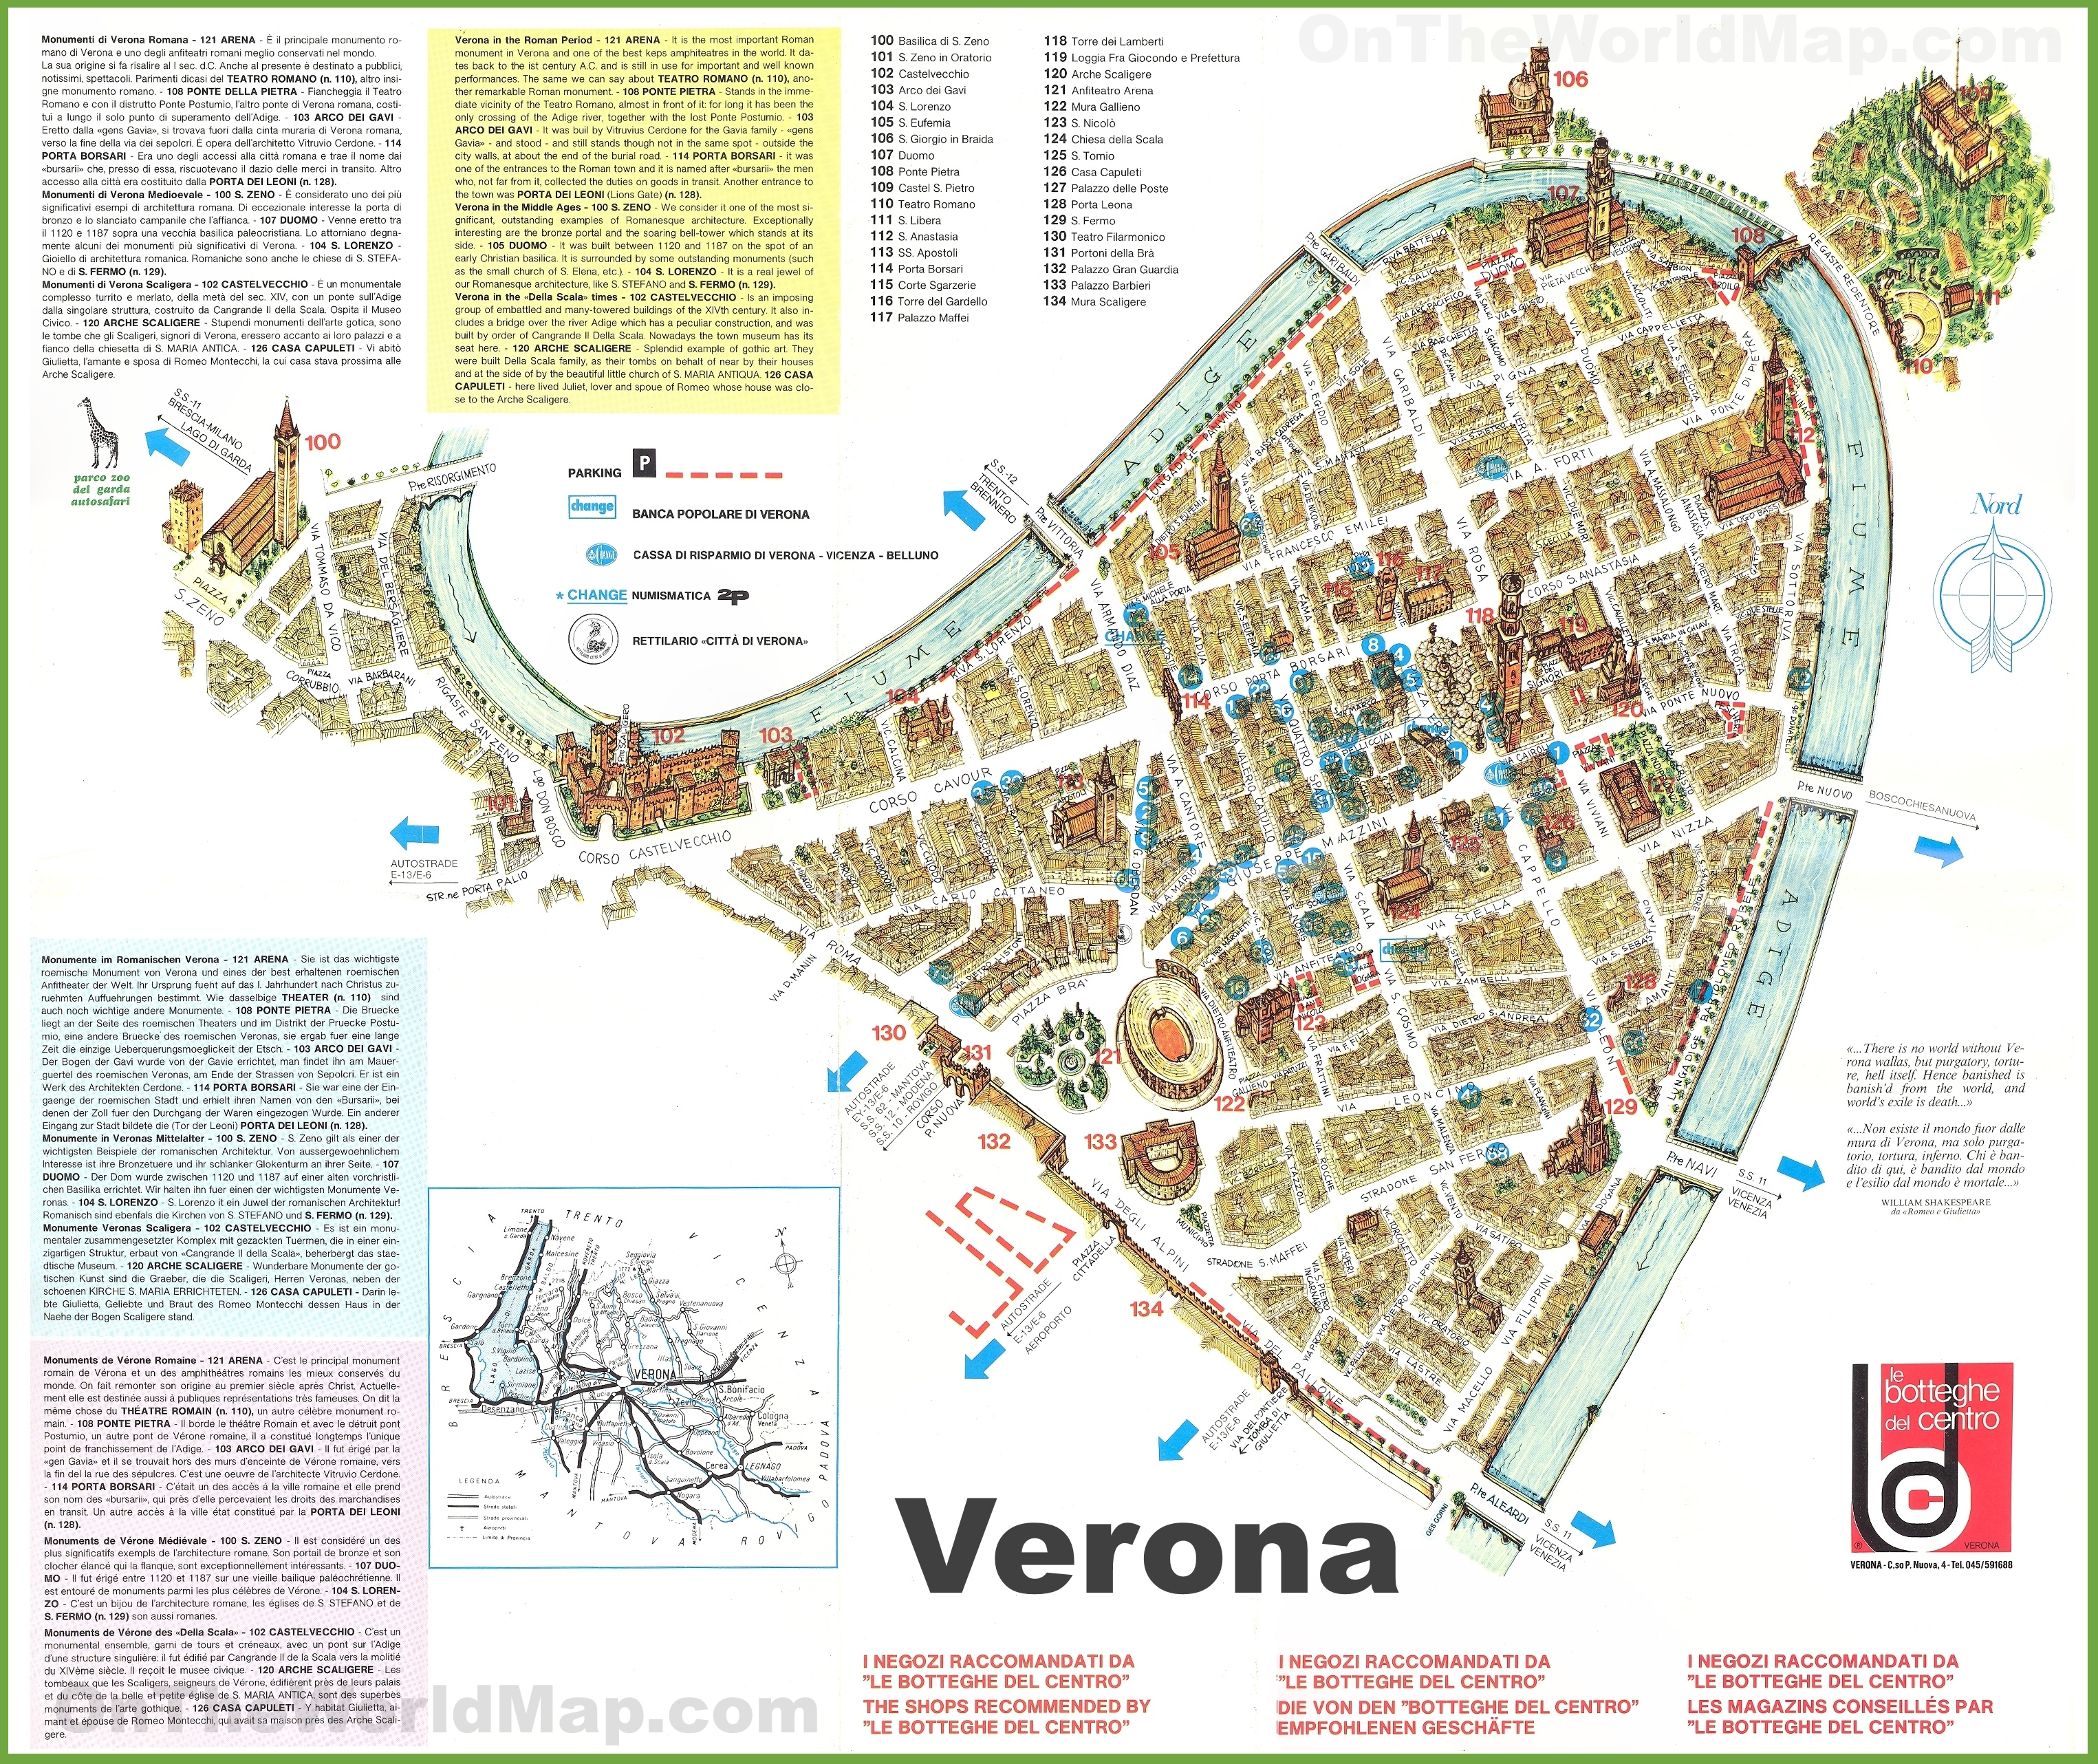 verona tourism map - photo#8